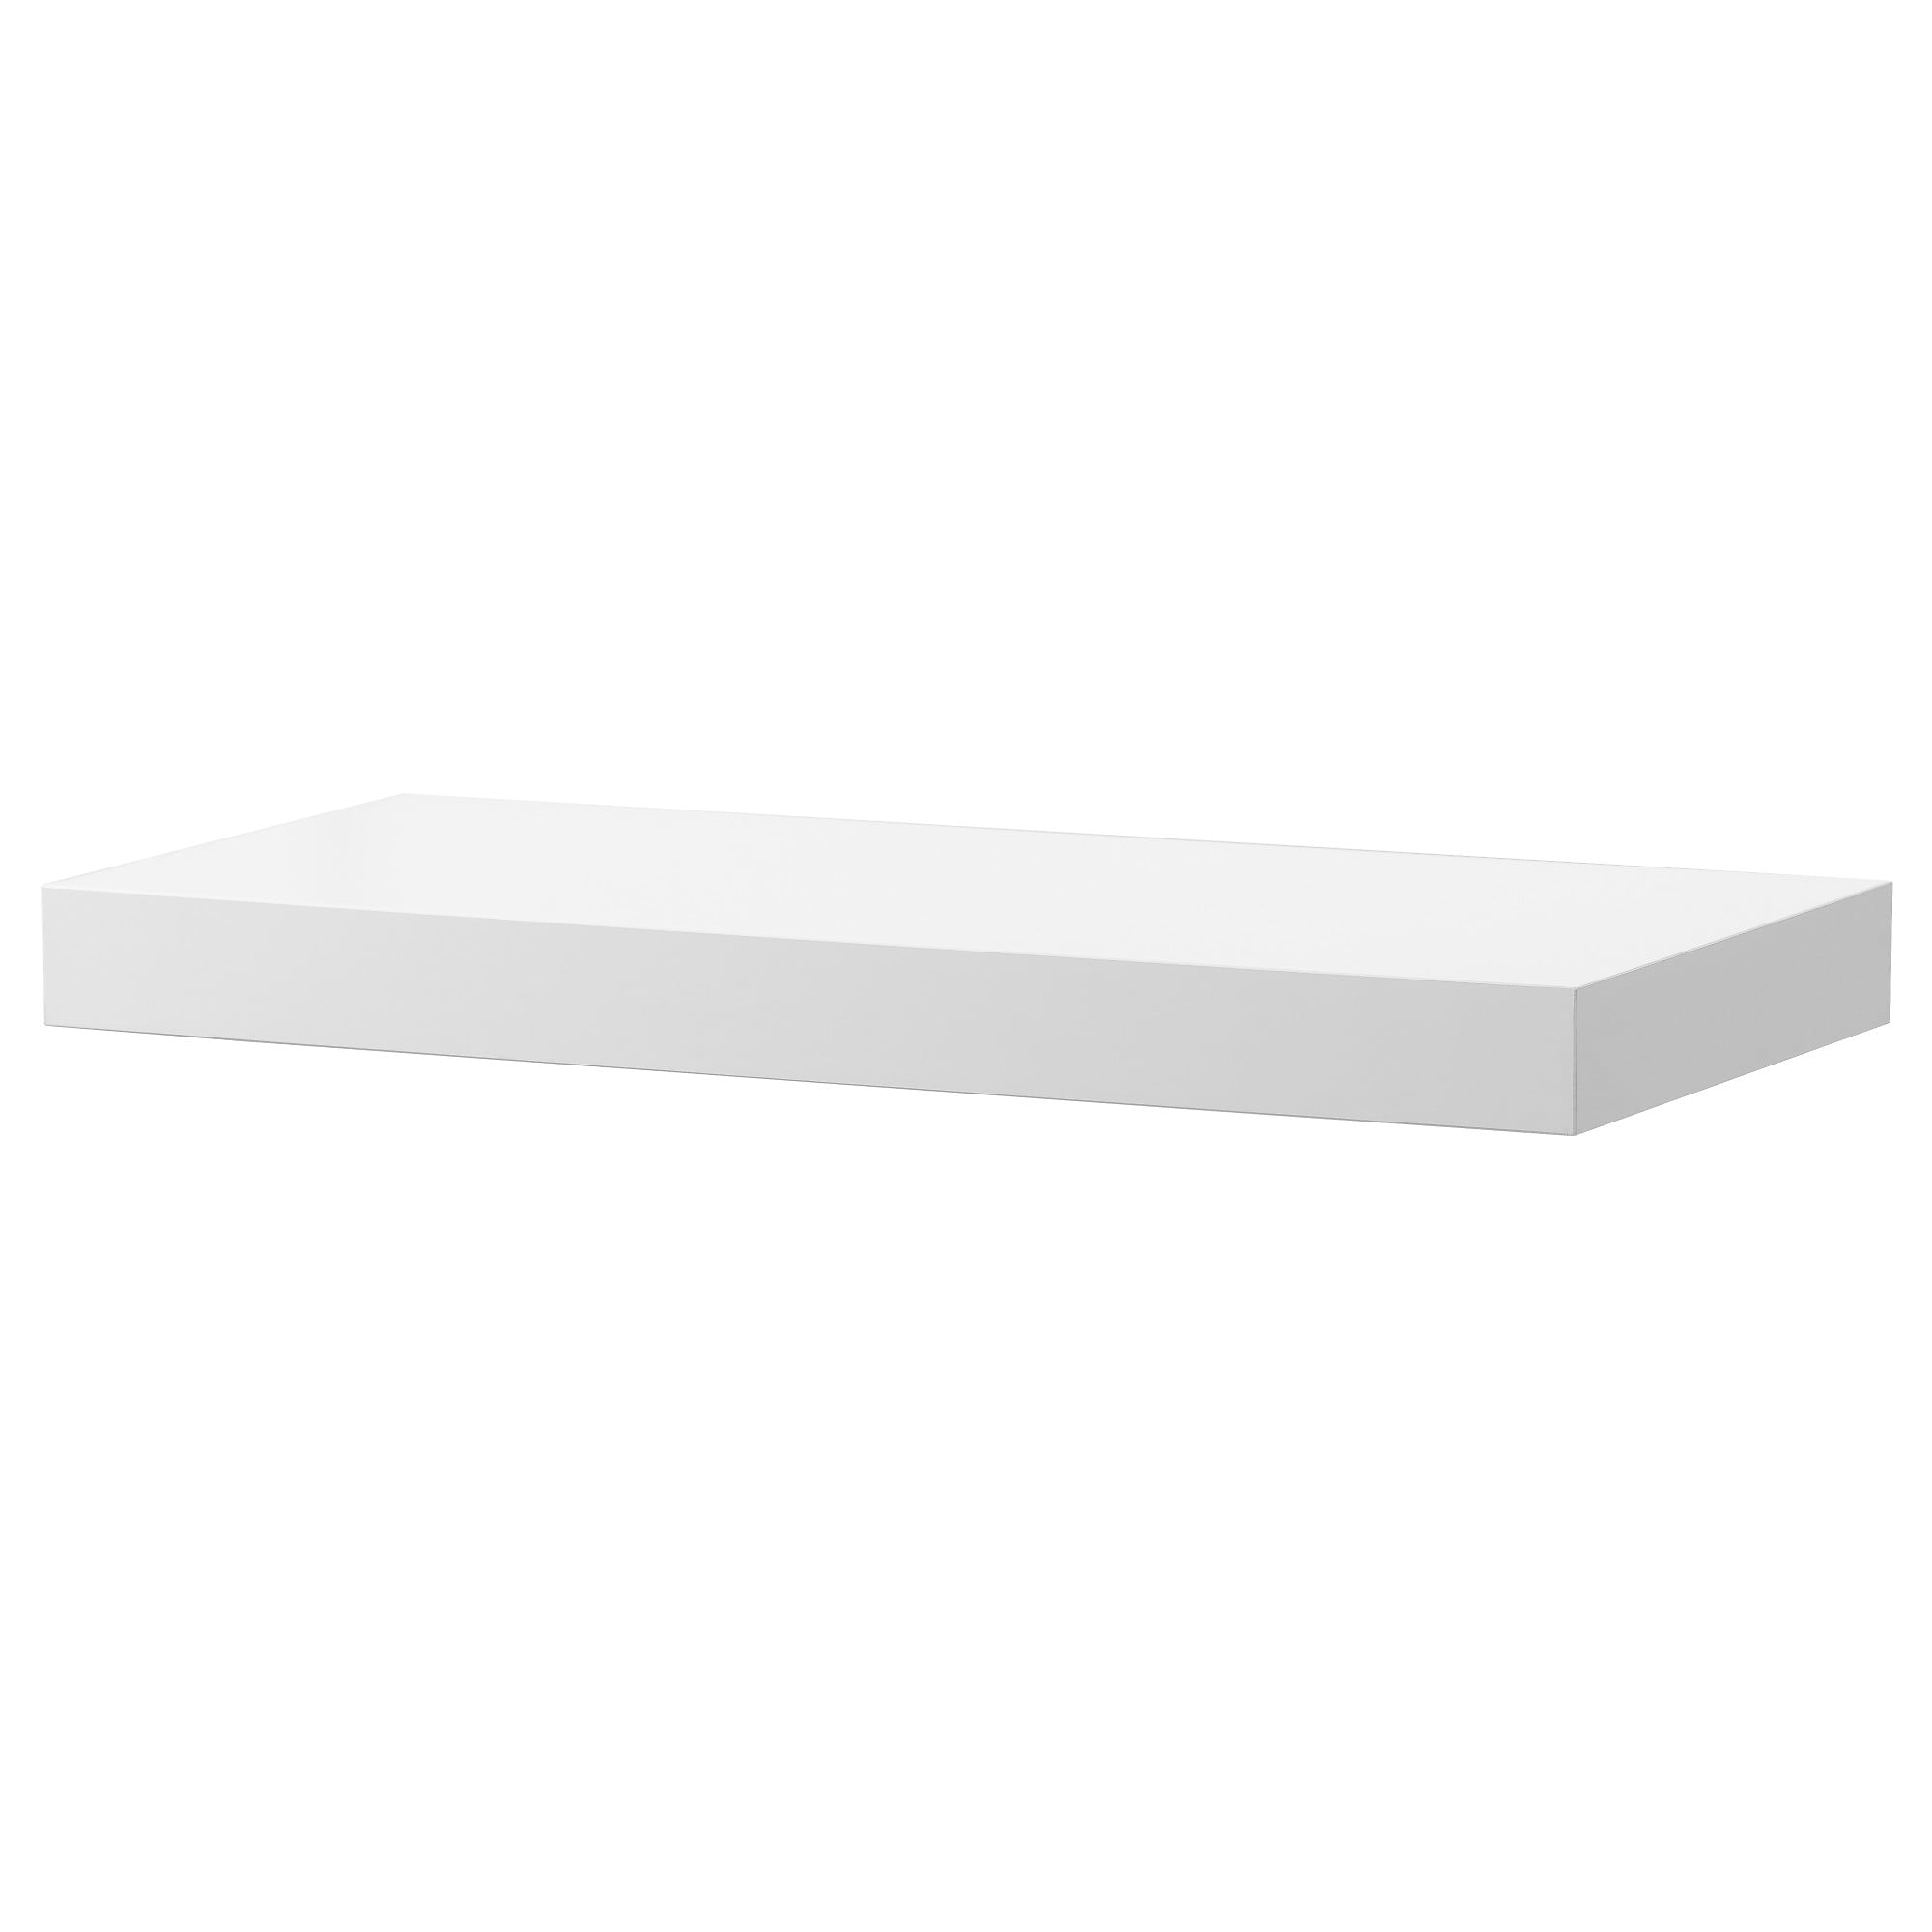 floating shelves wall shelf brackets ikea lack white high gloss small set drawers for desk glass movable kitchen island ideas coat and shoe rack corner shelving system kmart wire